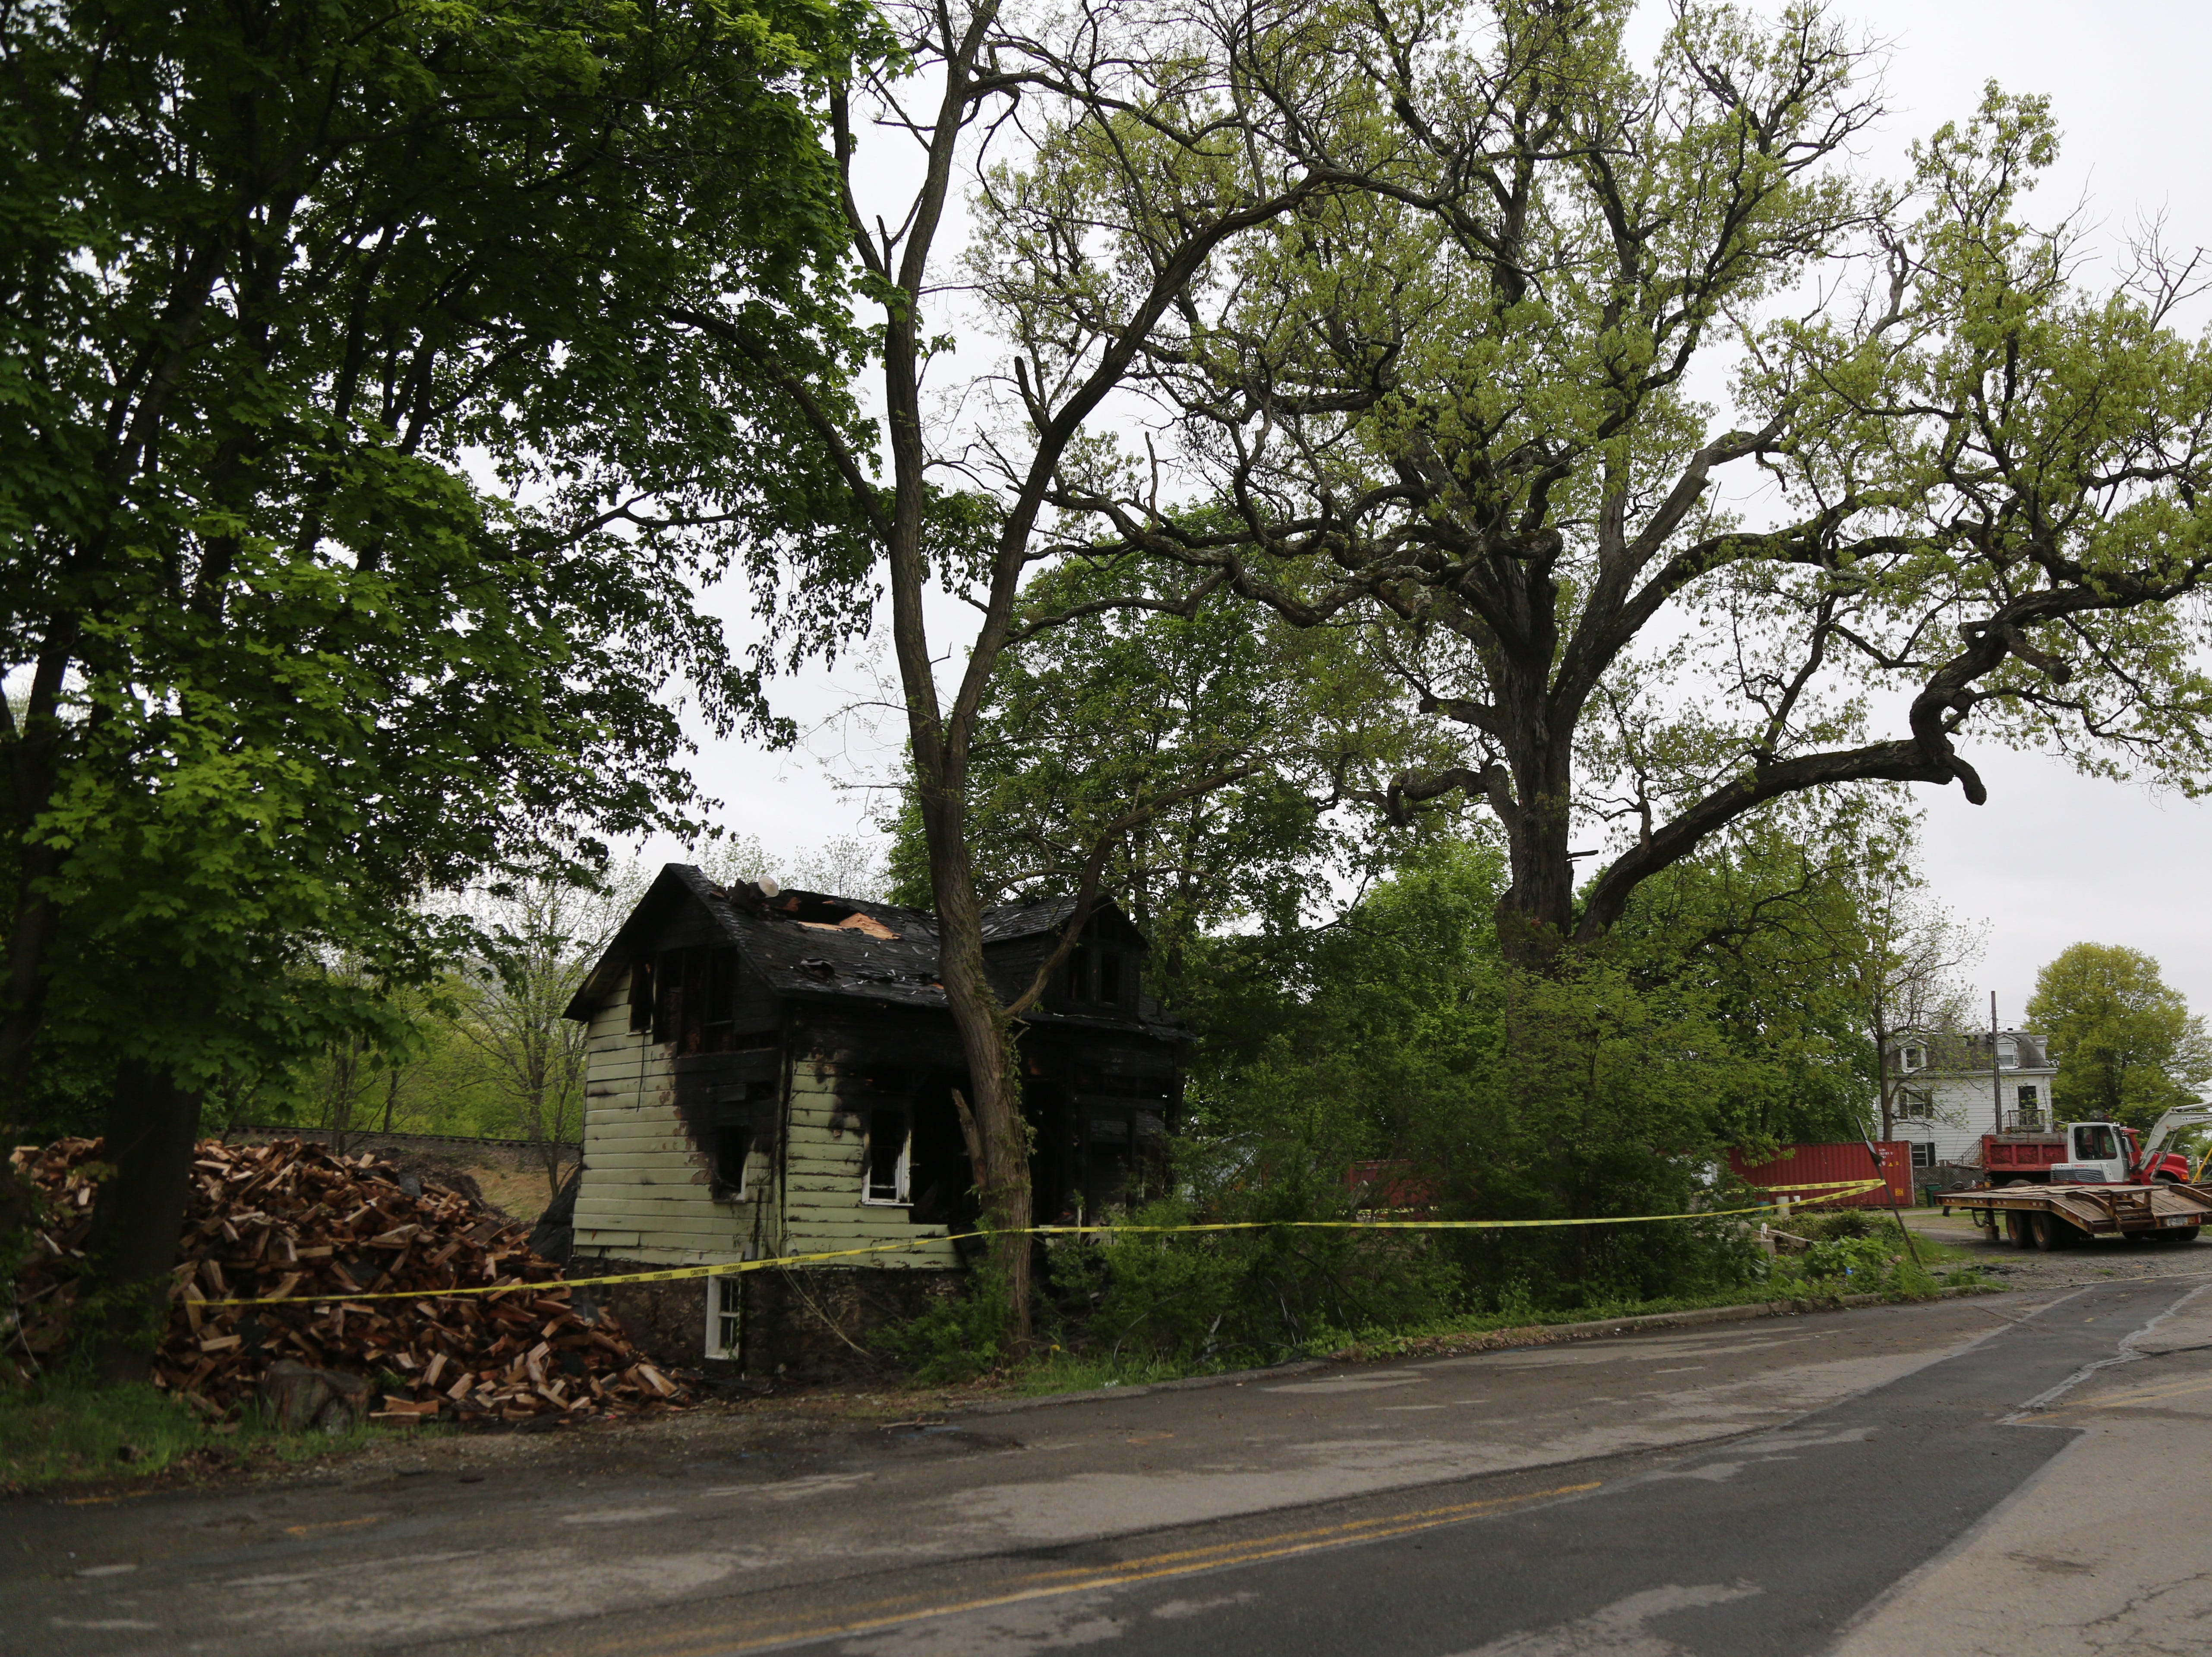 A two-story vacant house was destroyed in an early morning fire on Tuesday, May 7, 2019, in the Town of Fishkill.